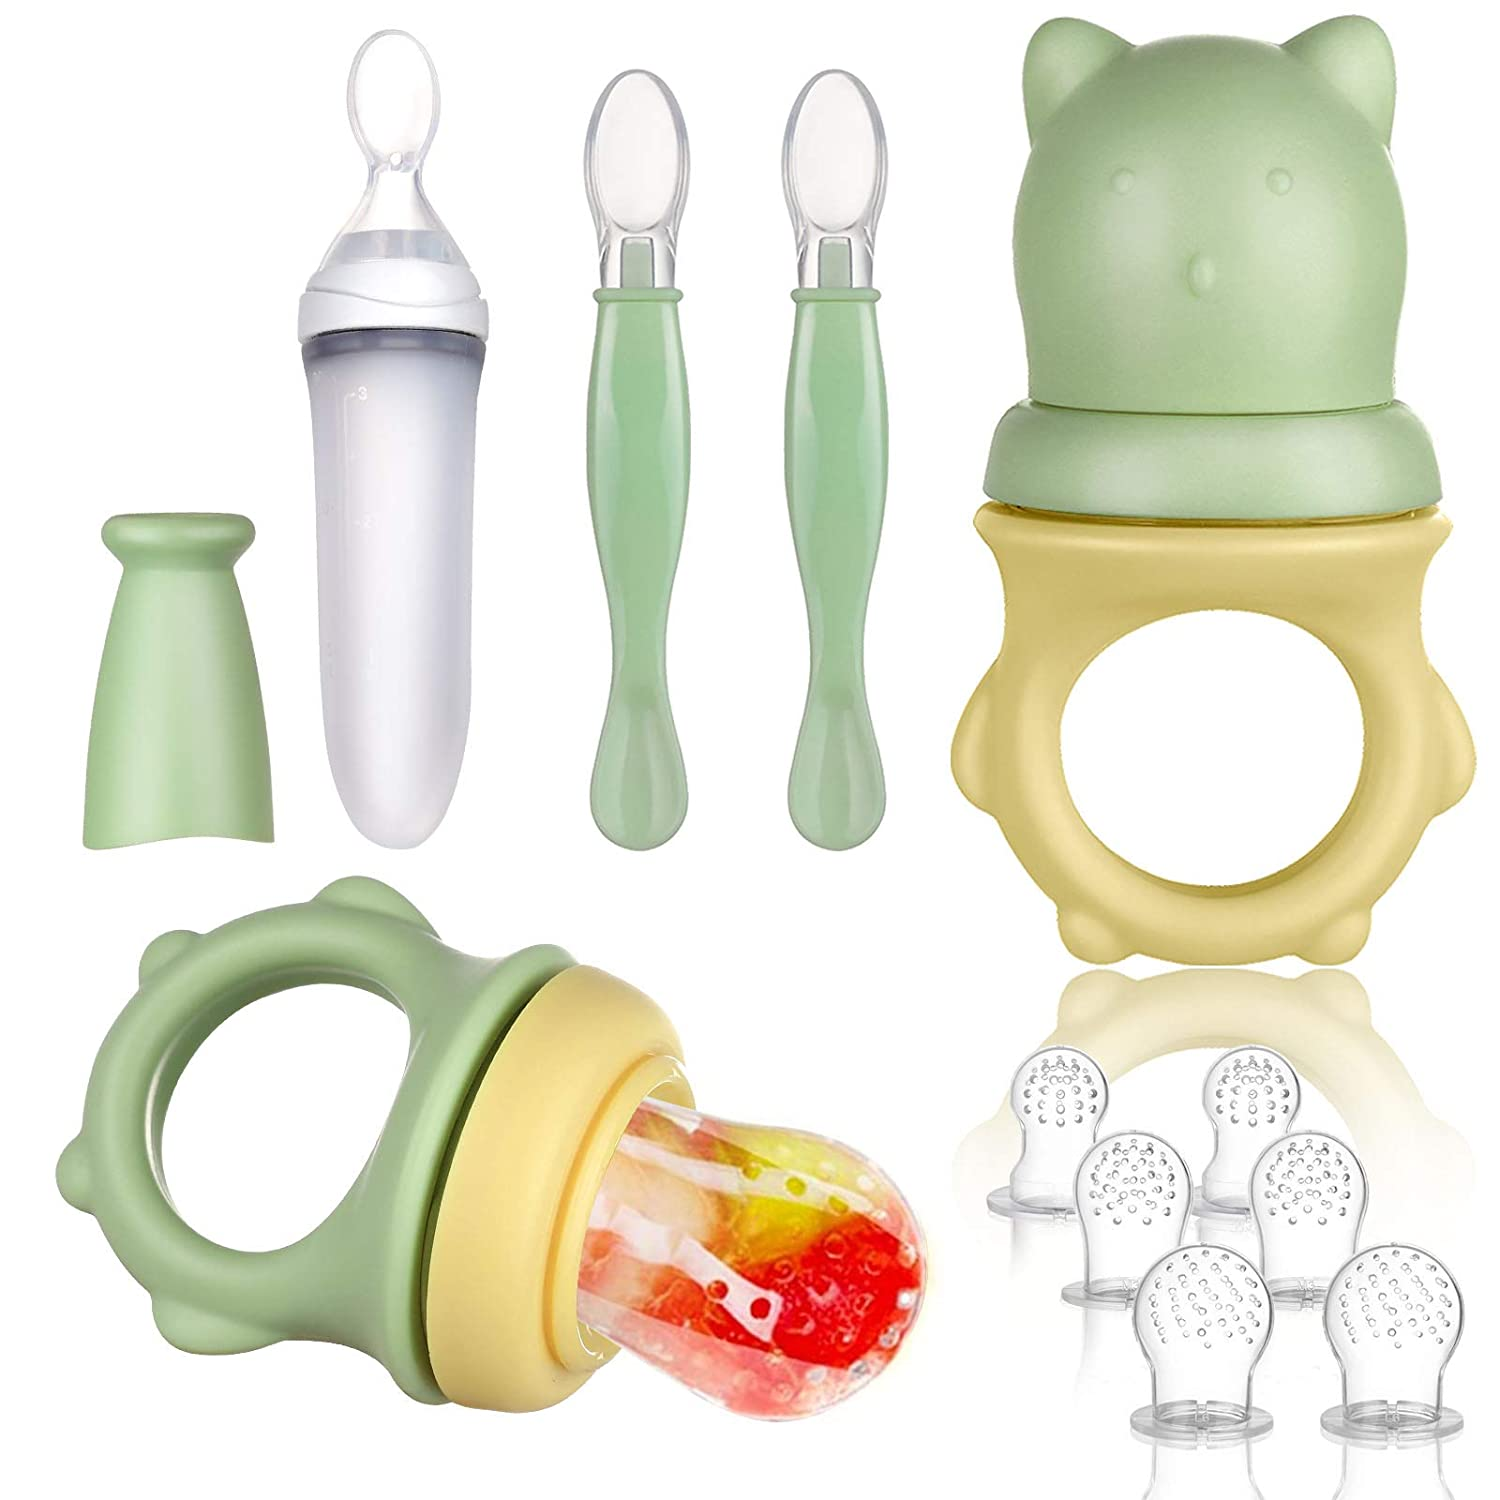 Lictin Baby Food Feeder Pacifier Set Feeding Supplies 11 PCS - Squeeze Spoon with Fresh Silicone Bottle, Infant Hot Safety Spoon, Baby Feeding Utensil Gift Box